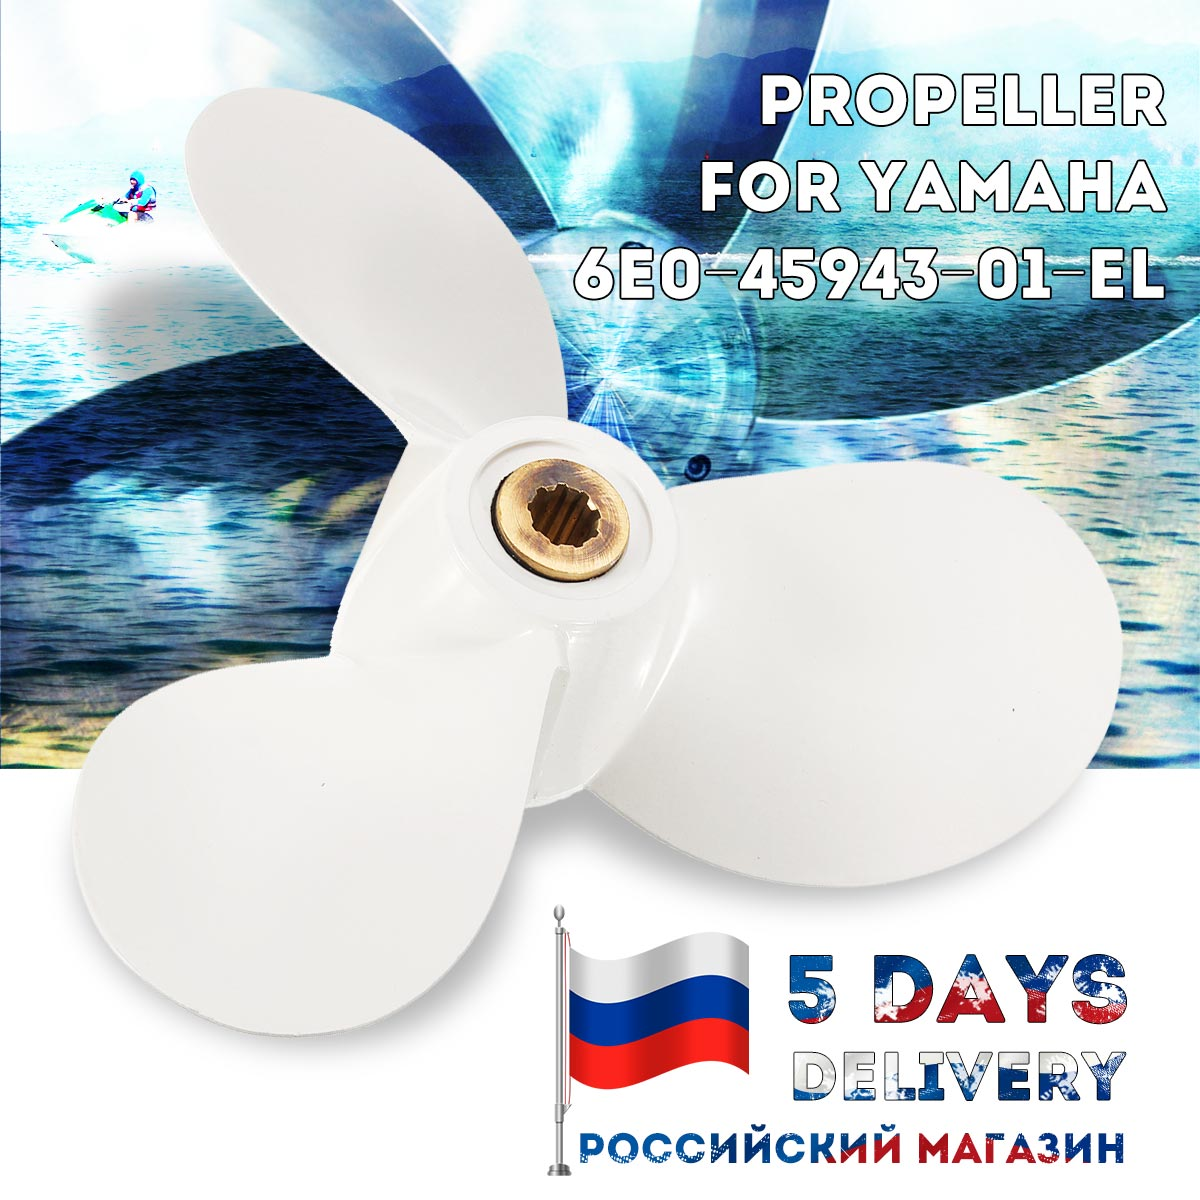 For Yamaha Outboard Engine Part 71/2X 7-BA 6E0-45943-01-EL Marine Boat Engine Propeller 4hp 5hp Engine boat engine propeller 7 1 4x6 bs for yamaha 2 5hp 3hp 4hp 5hp f2 5a 3a malta outboard motor 7 1 4 x 6 bs free shipping